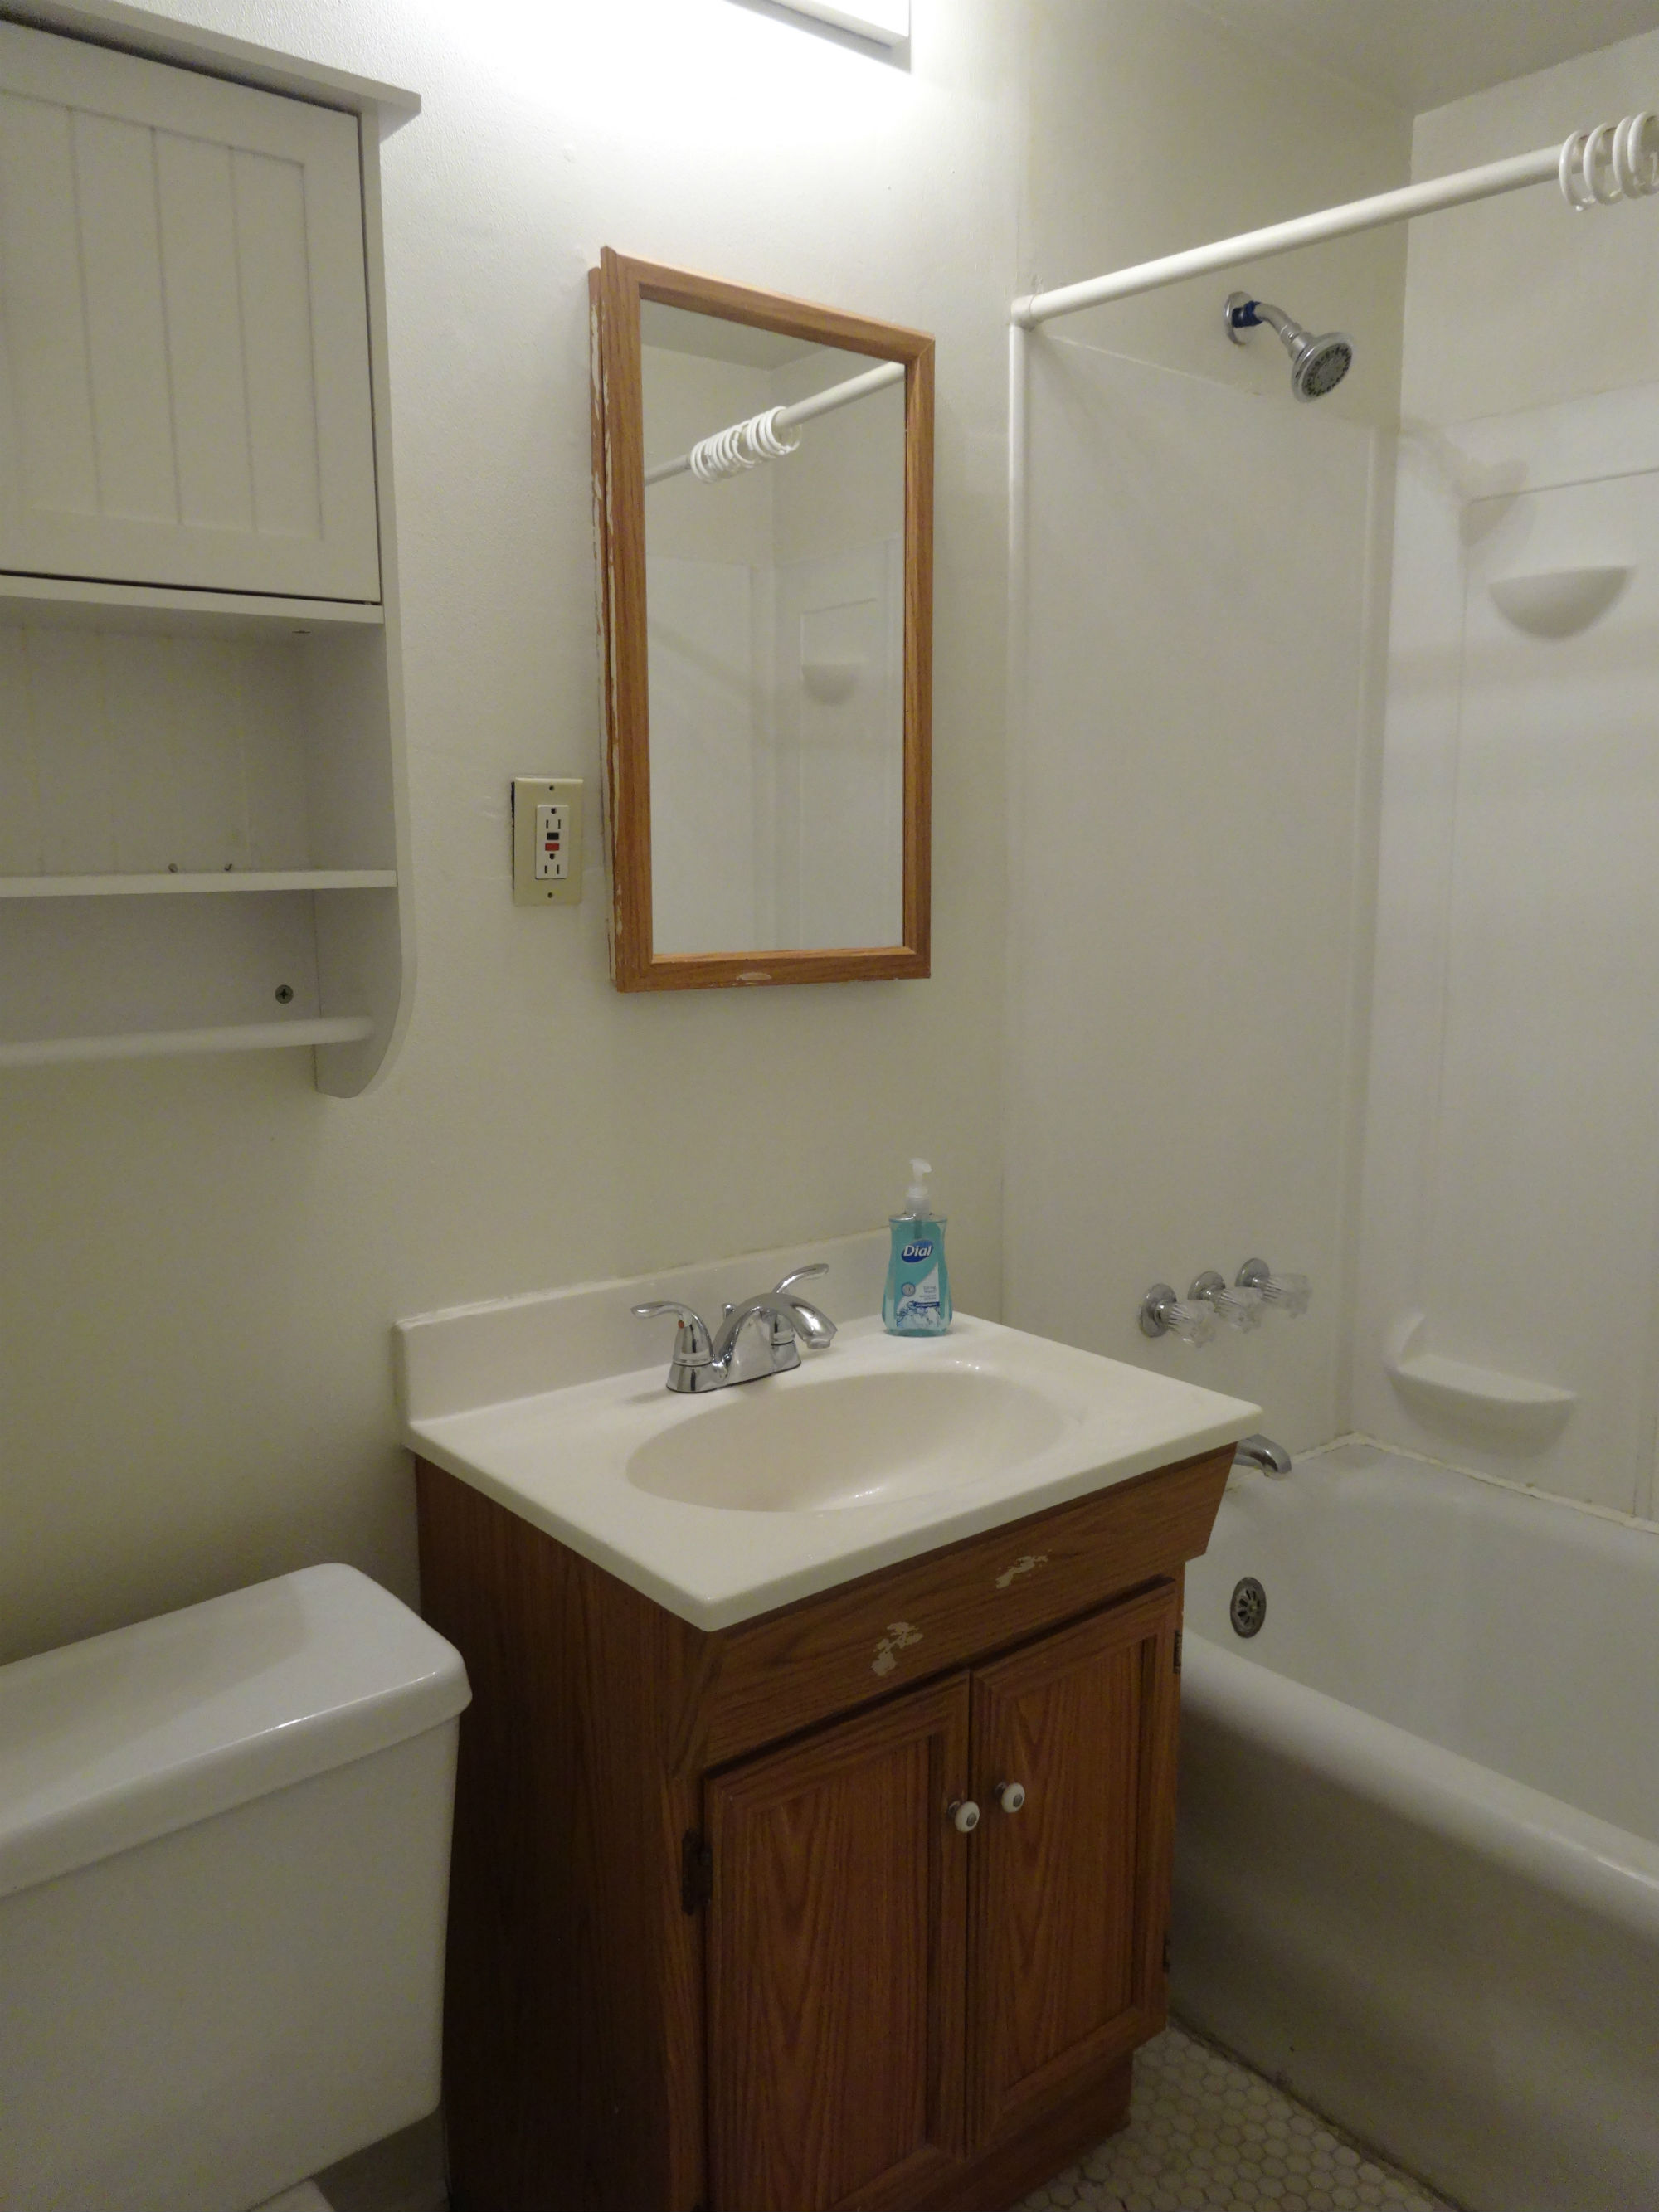 Right side bathroom with newer vanity and toilet.